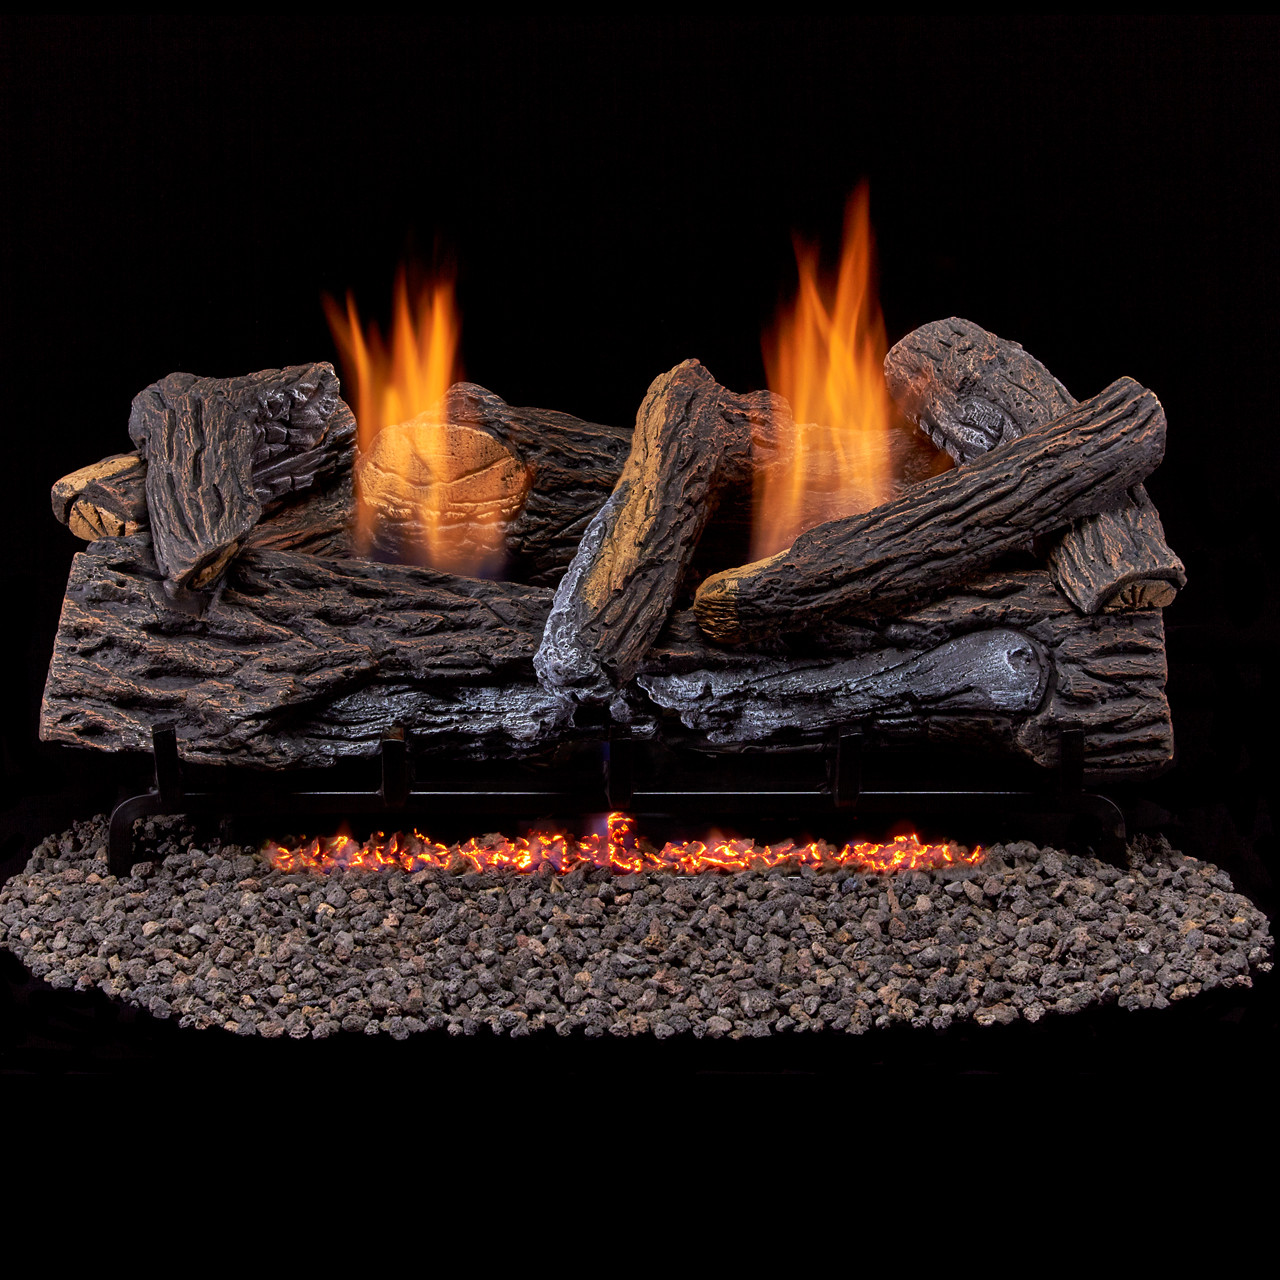 Gas Fireplace Store Gas Log Gas Log Sets Fireplace Log Sets Factory Buys Direct